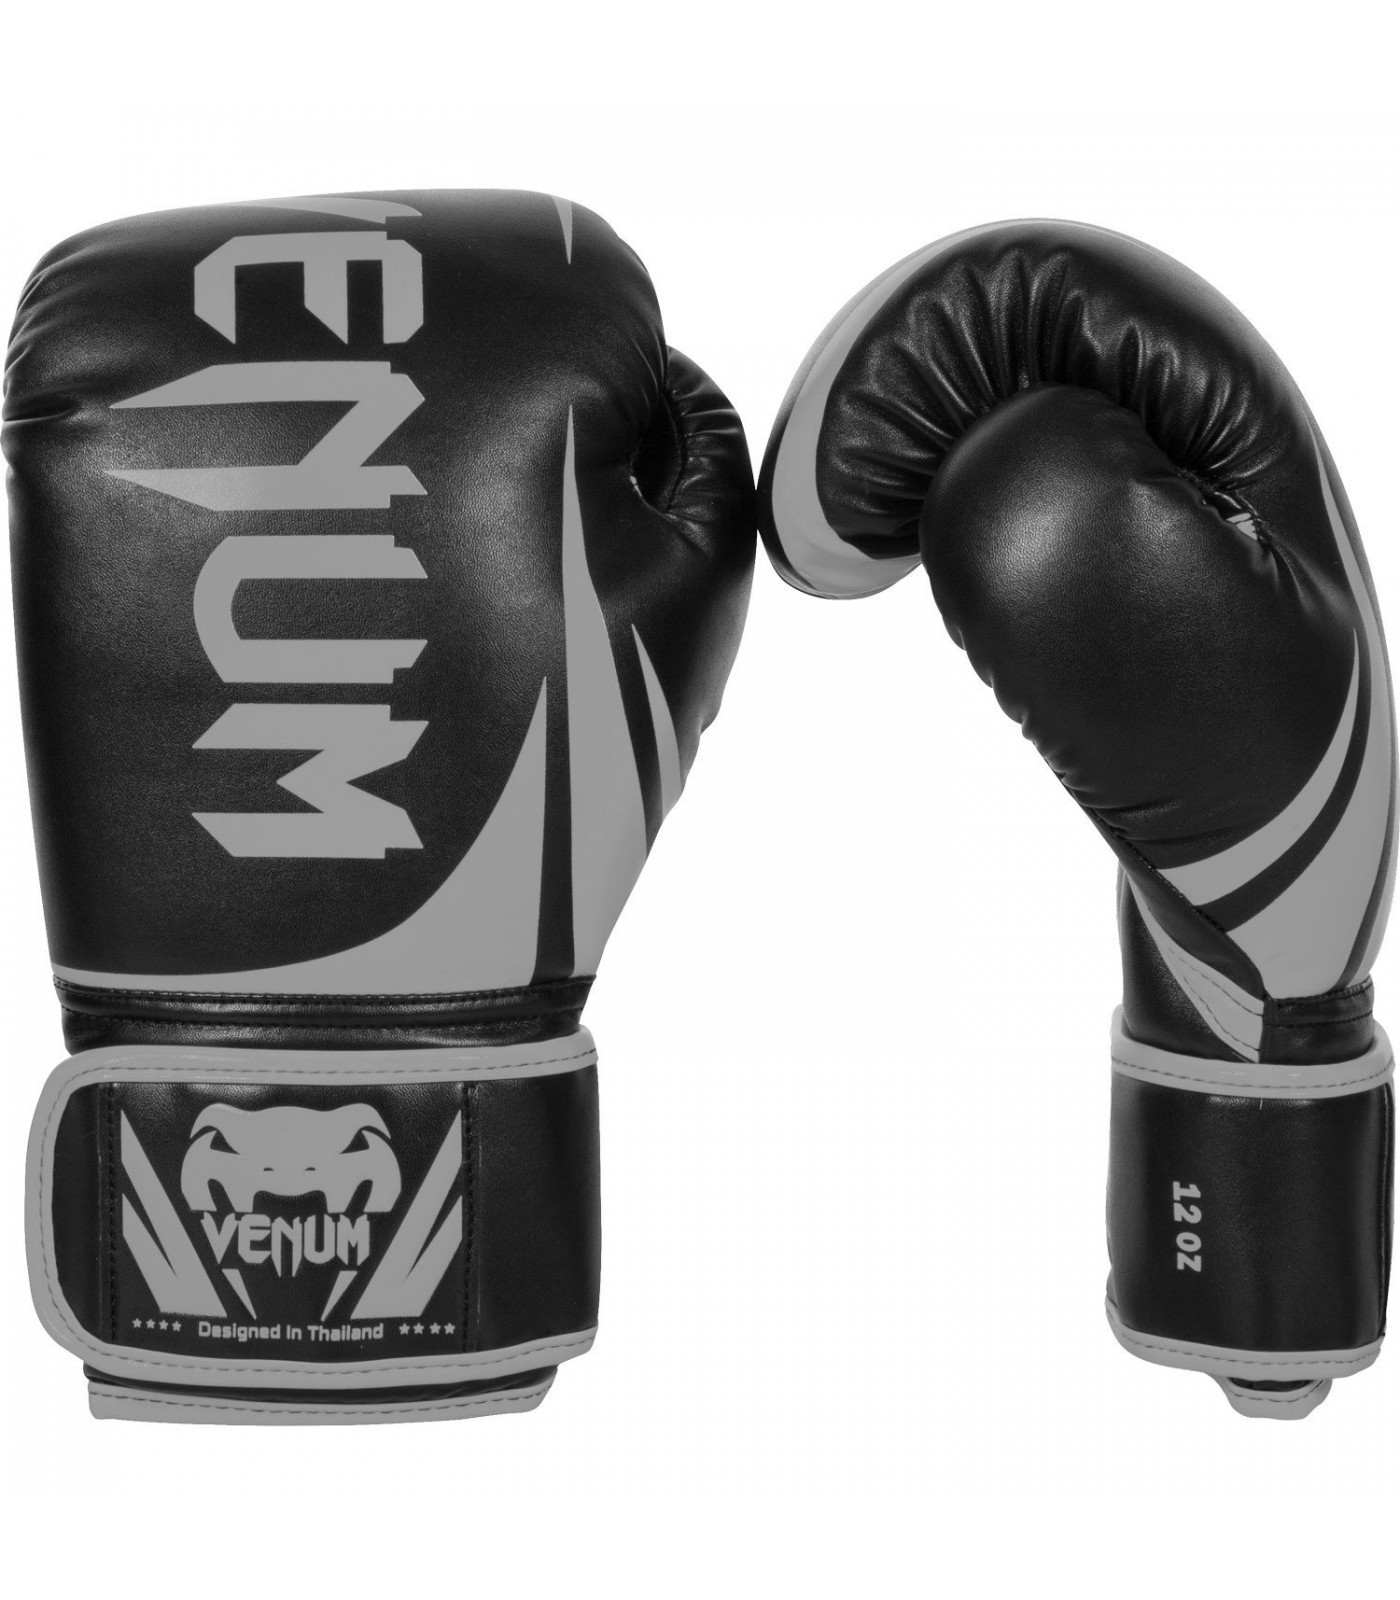 Боксови ръкавици - Venum Challenger 2.0 Boxing Gloves - Black/Grey​